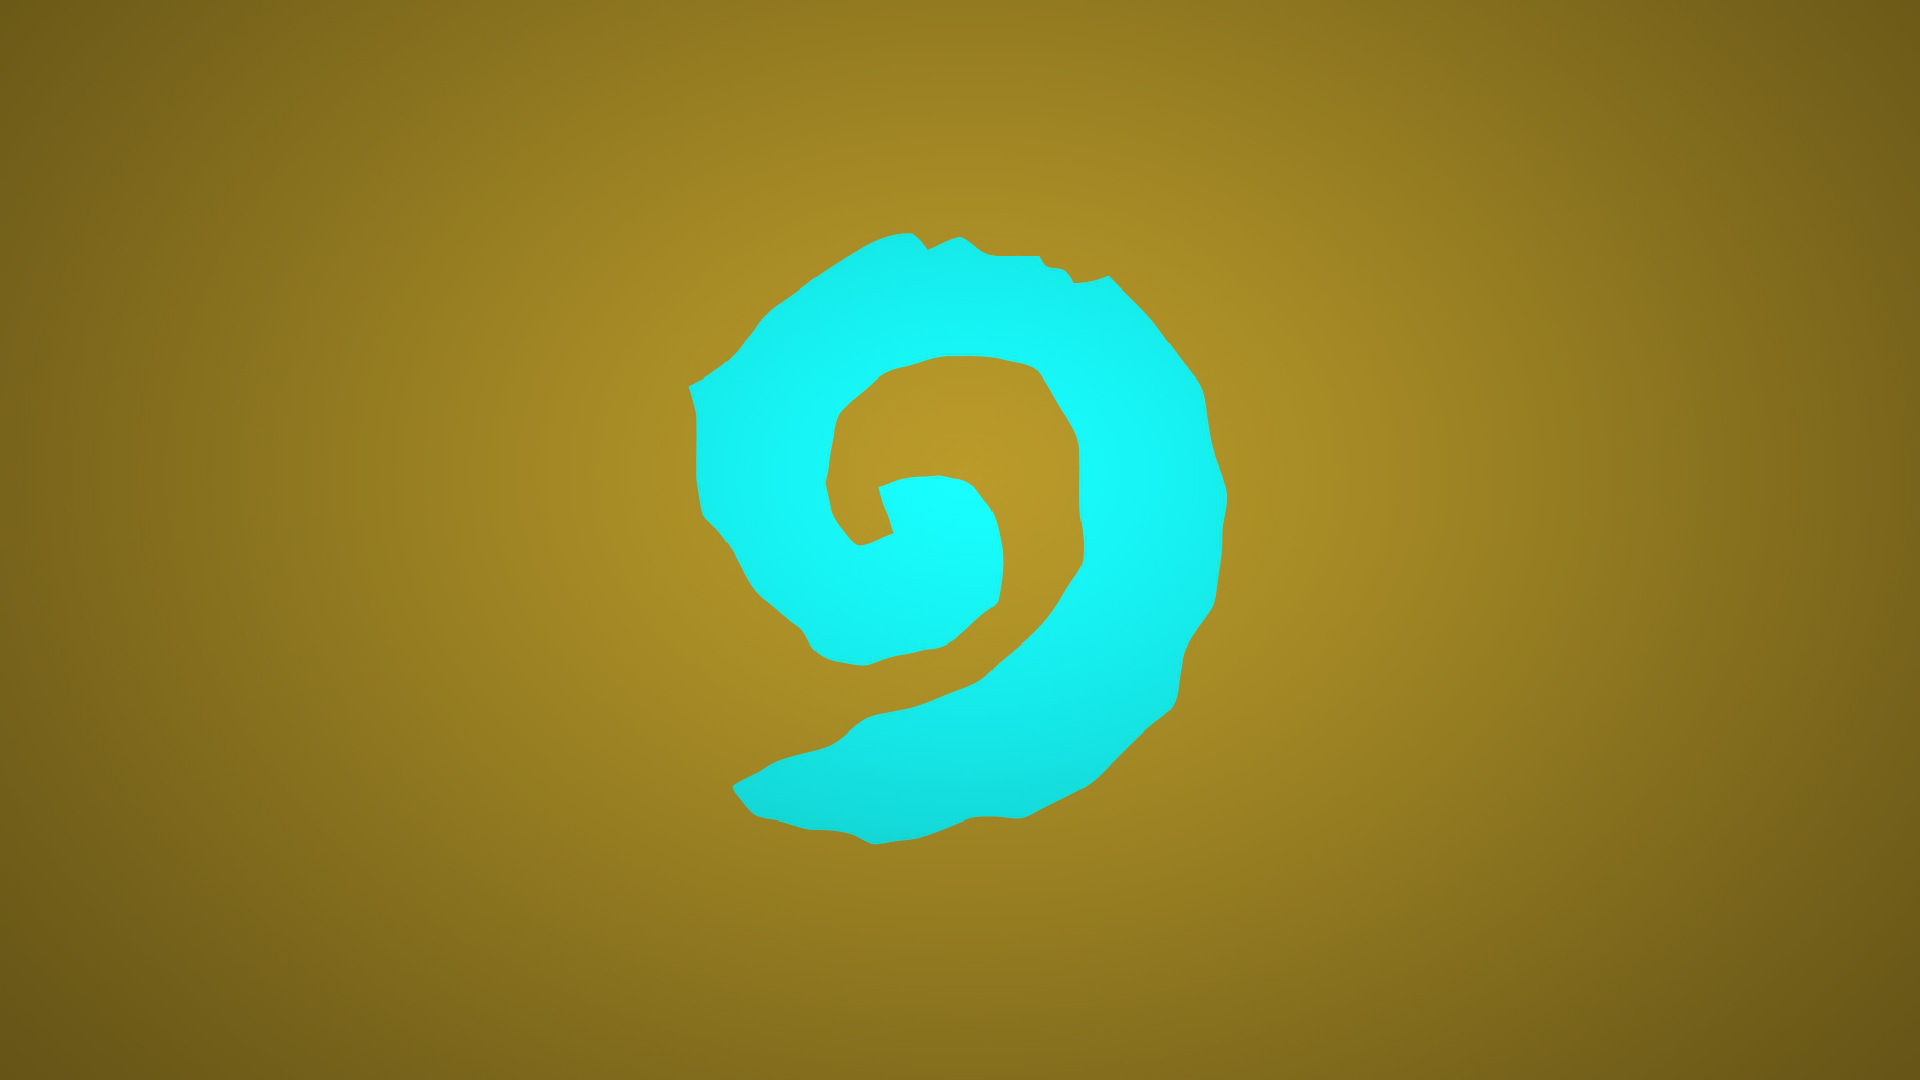 Hearthstone Wallpaper Version 1 By VinylProductArt